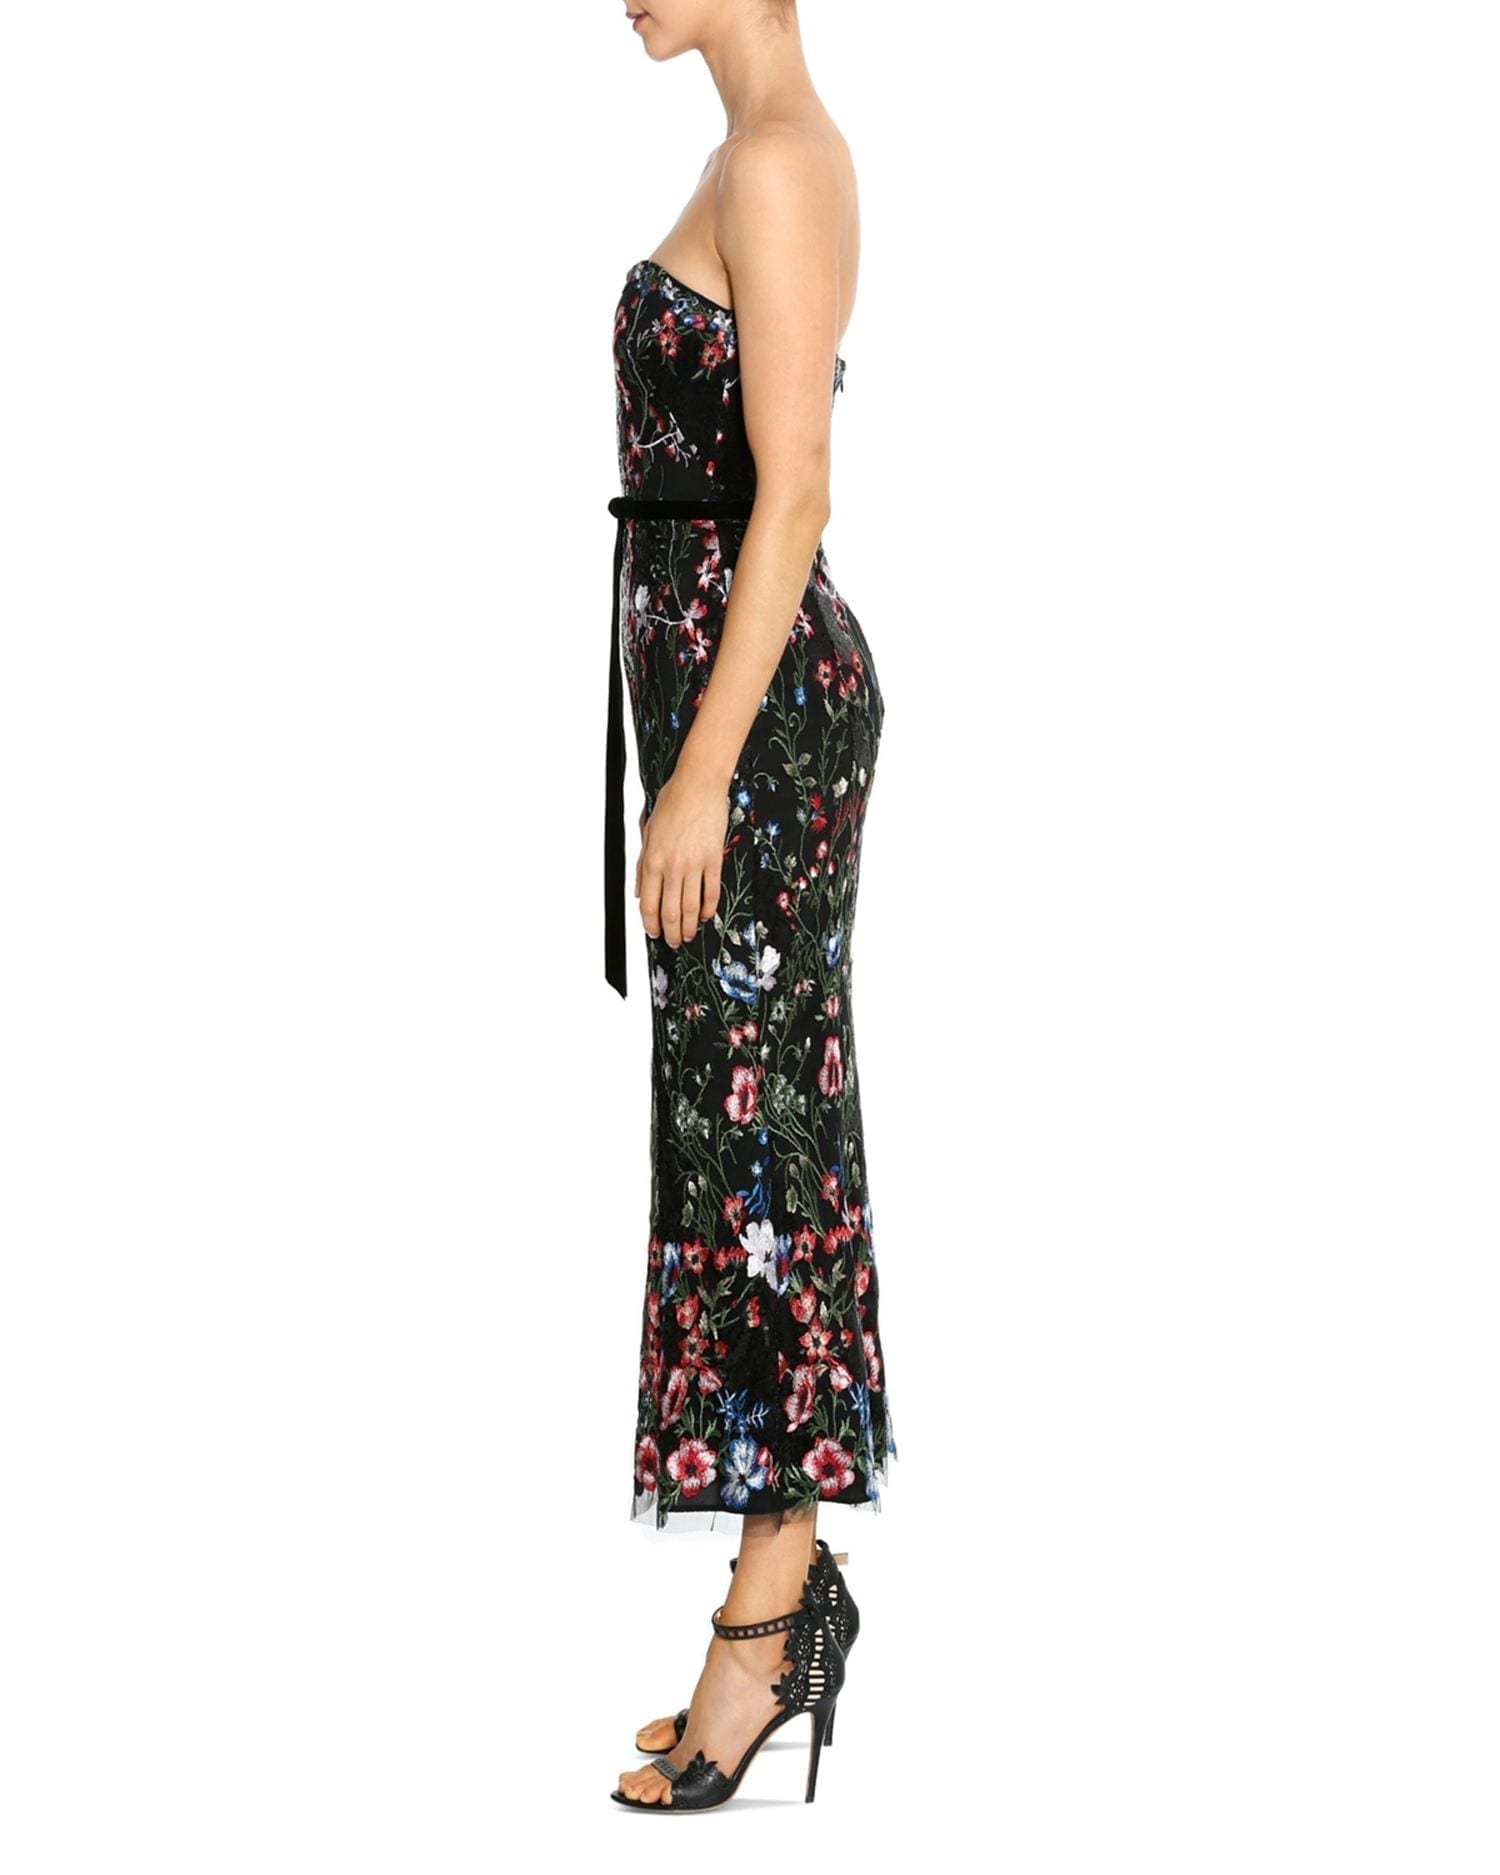 MARCHESA NOTTE Embroidered Strapless Floral Midi Dress